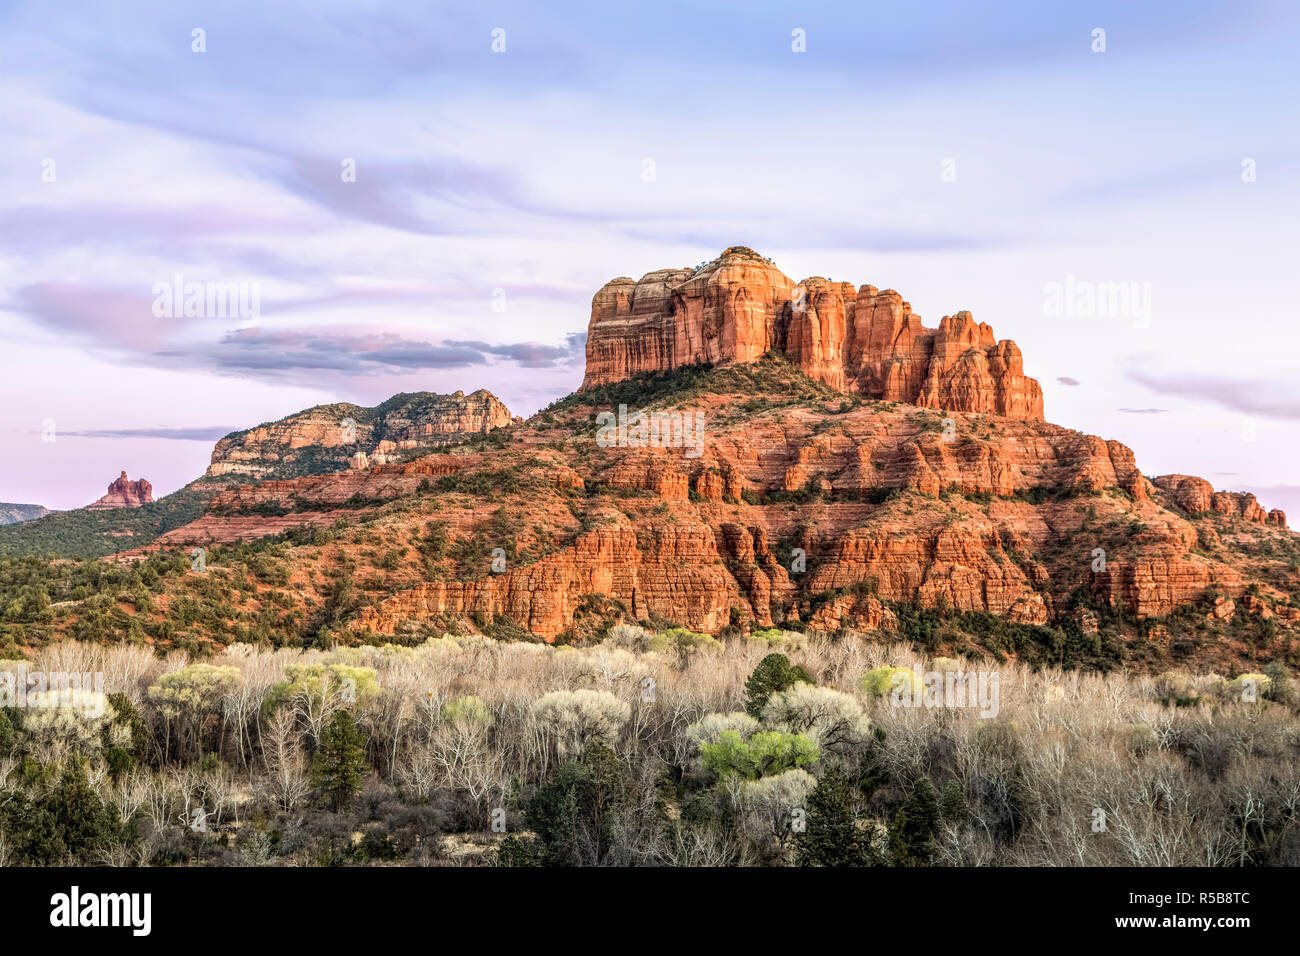 The setting sun paints the sky and rock formations of Sedona, Arizona including Cathedral Rock to the right. Stock Photo